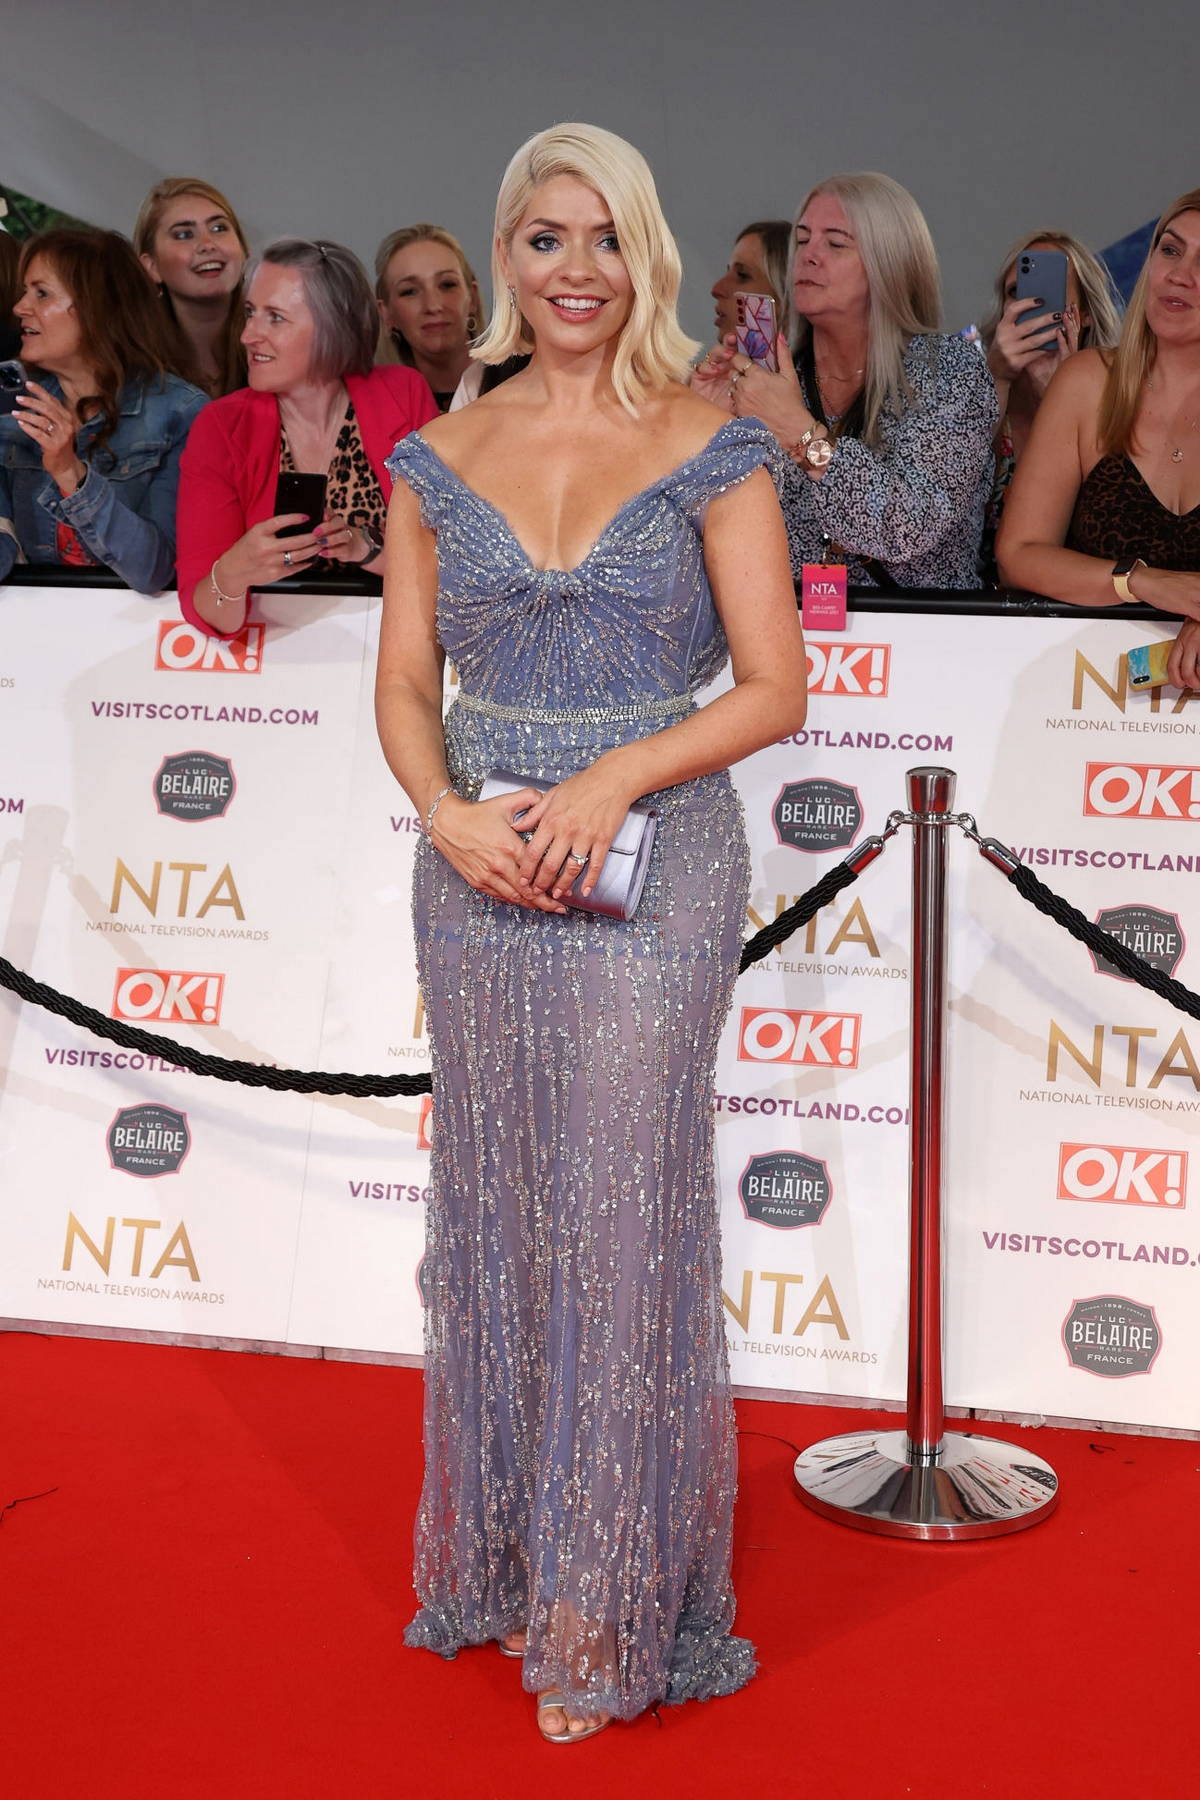 Holly Willoughby attends the 2021 National Television Awards at The O2 Arena in London, UK